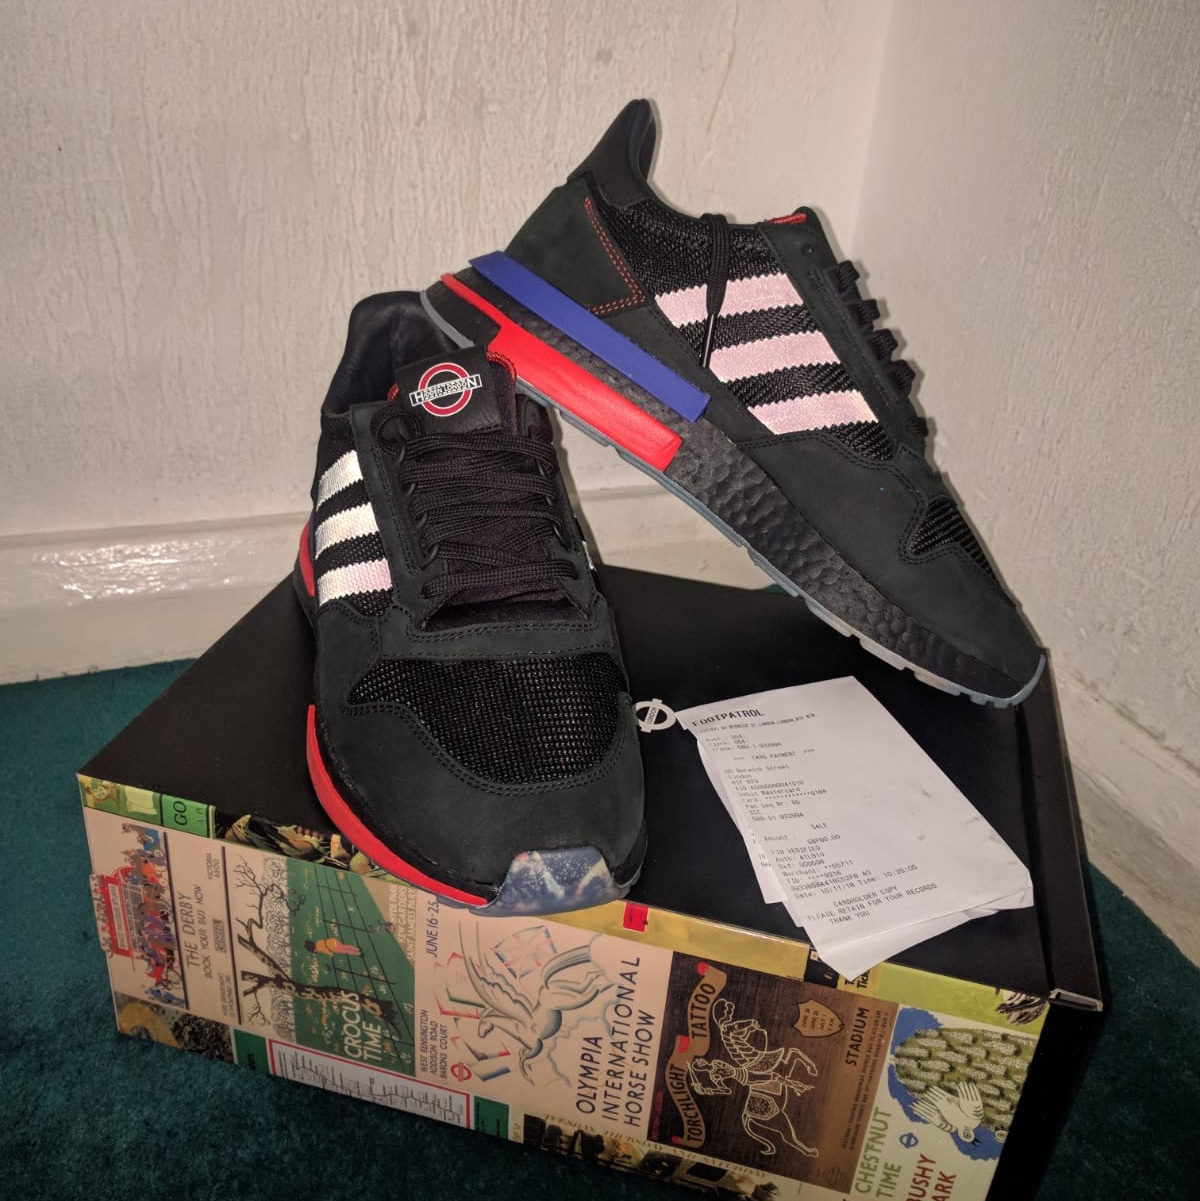 best sneakers 467b1 08076 Adidas x TfL ZX 500 RM (size 8, 8.5) (These do not... - Depop